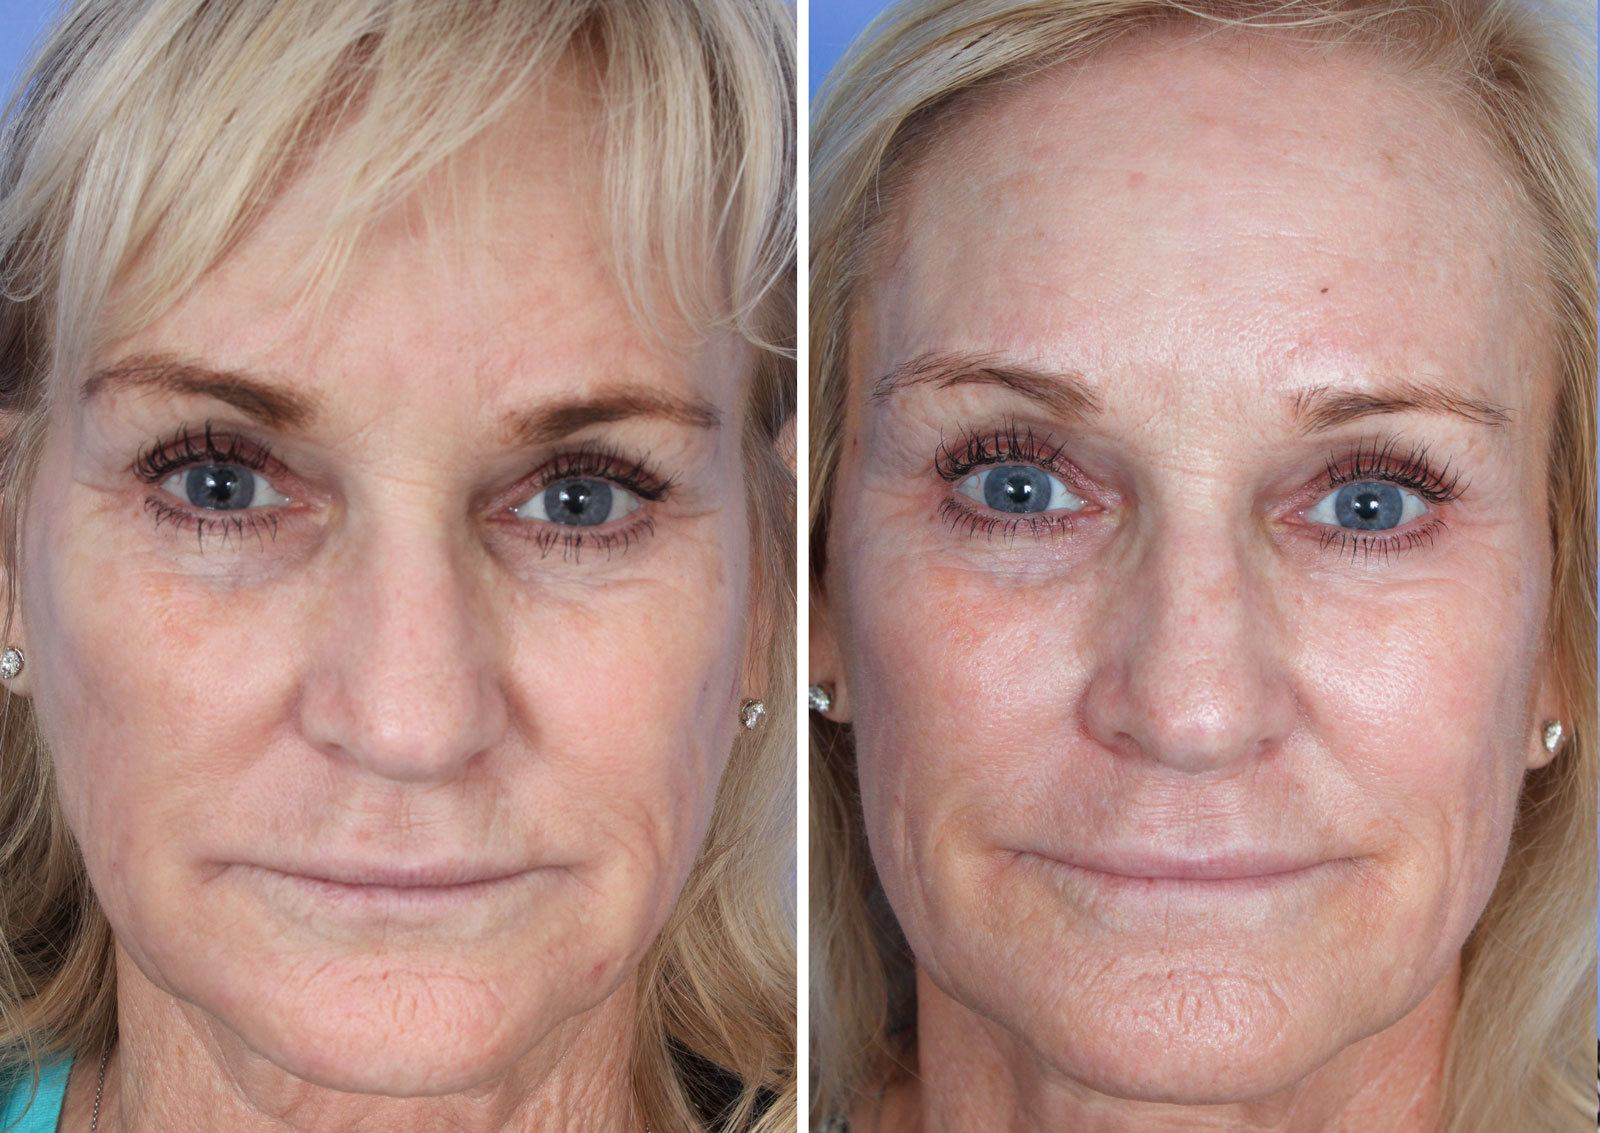 BOTOX Mission Viejo Patient 3